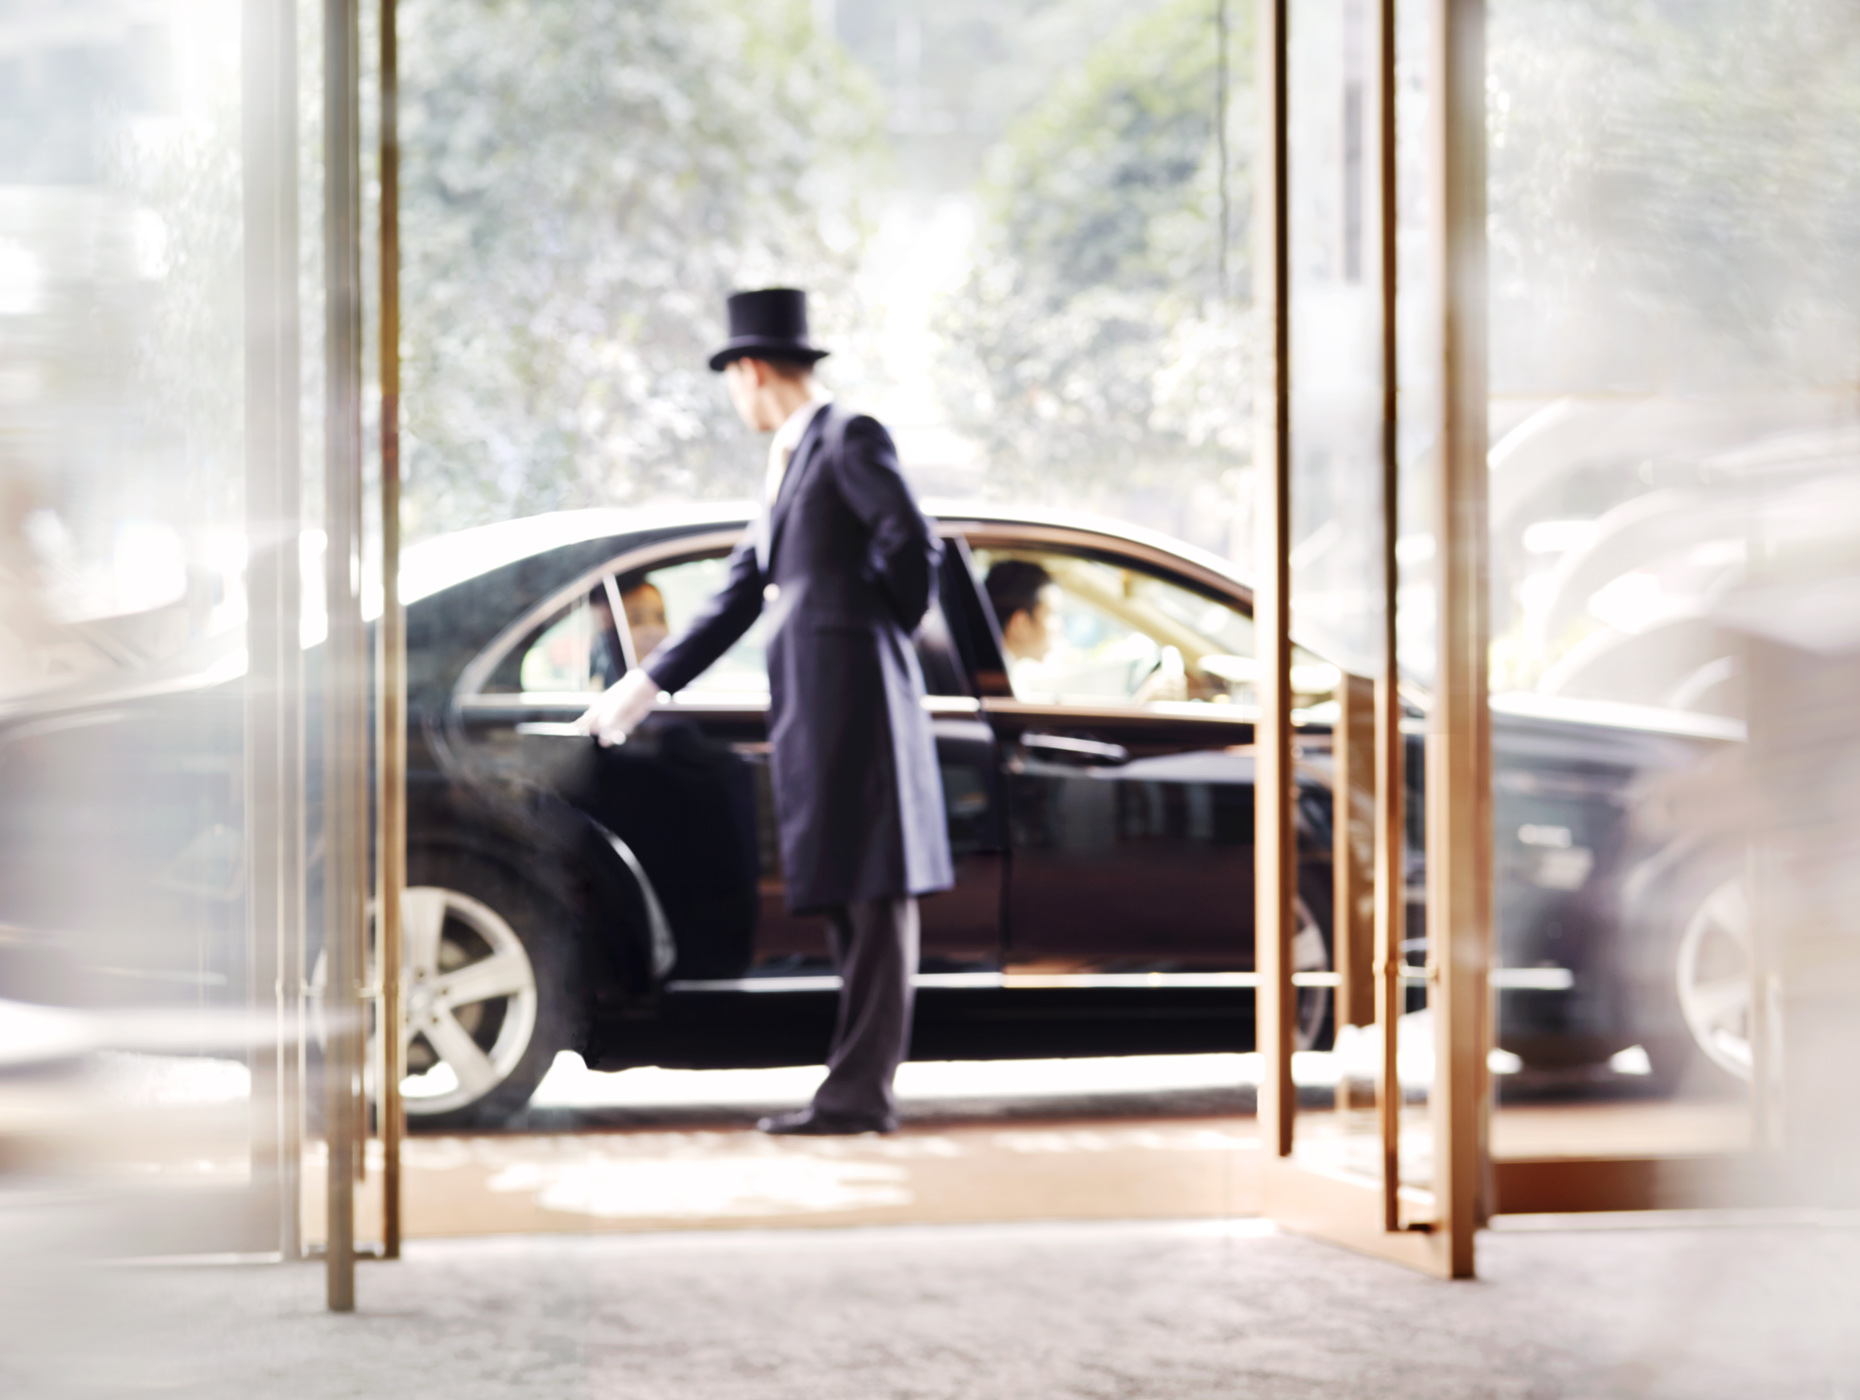 The arrival experience at The Ritz-Carlton, Chengdu | China |